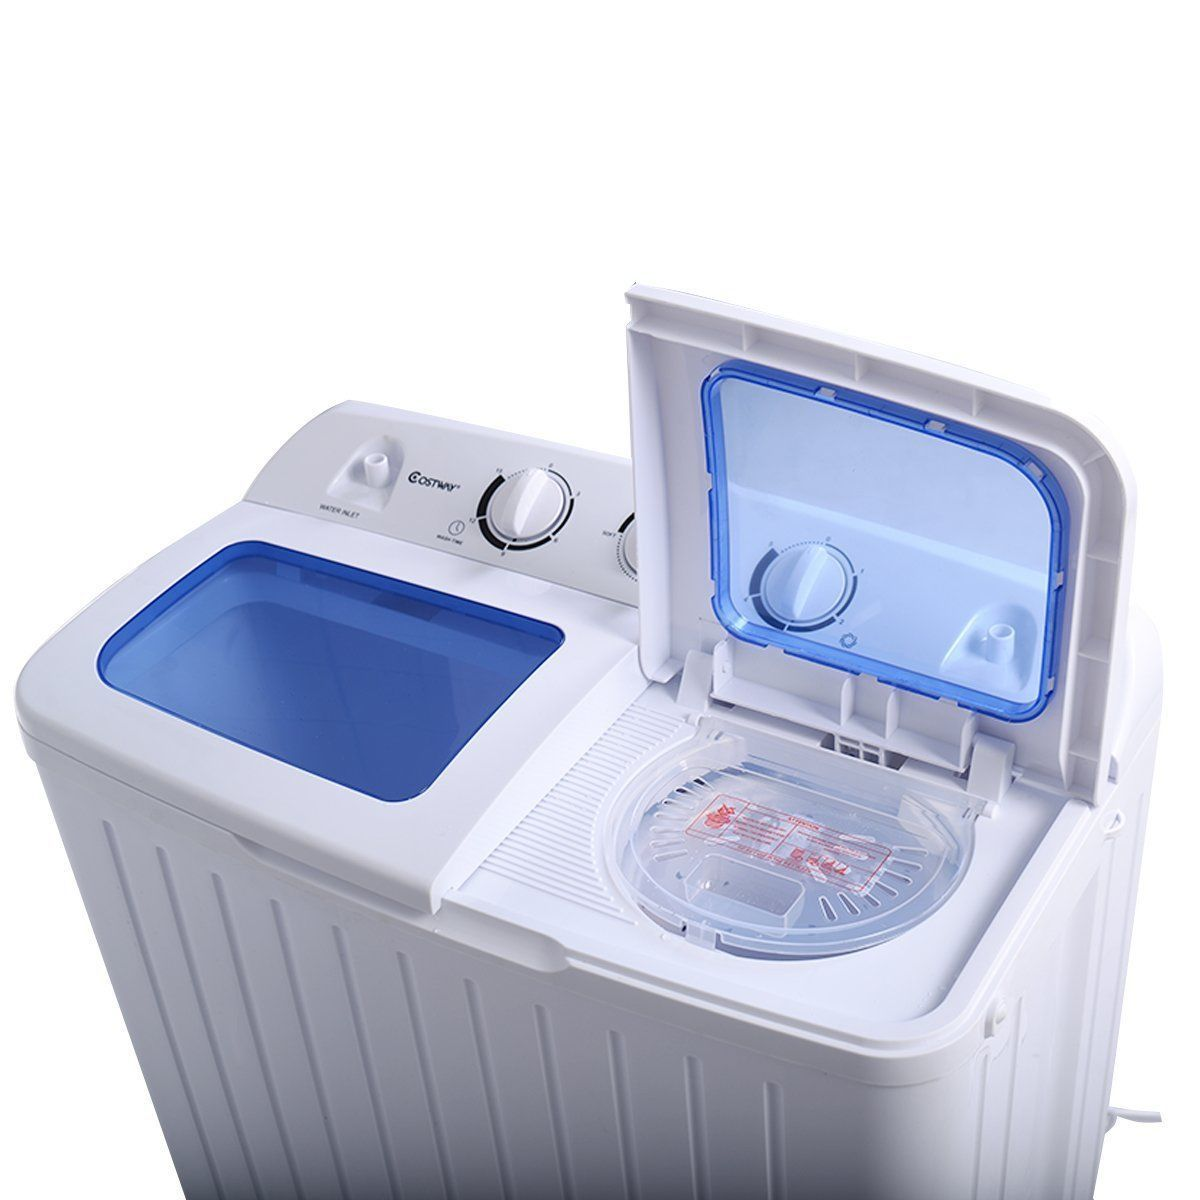 Portable Mini Washers And Dryers Compact Spin Dryer Appliances